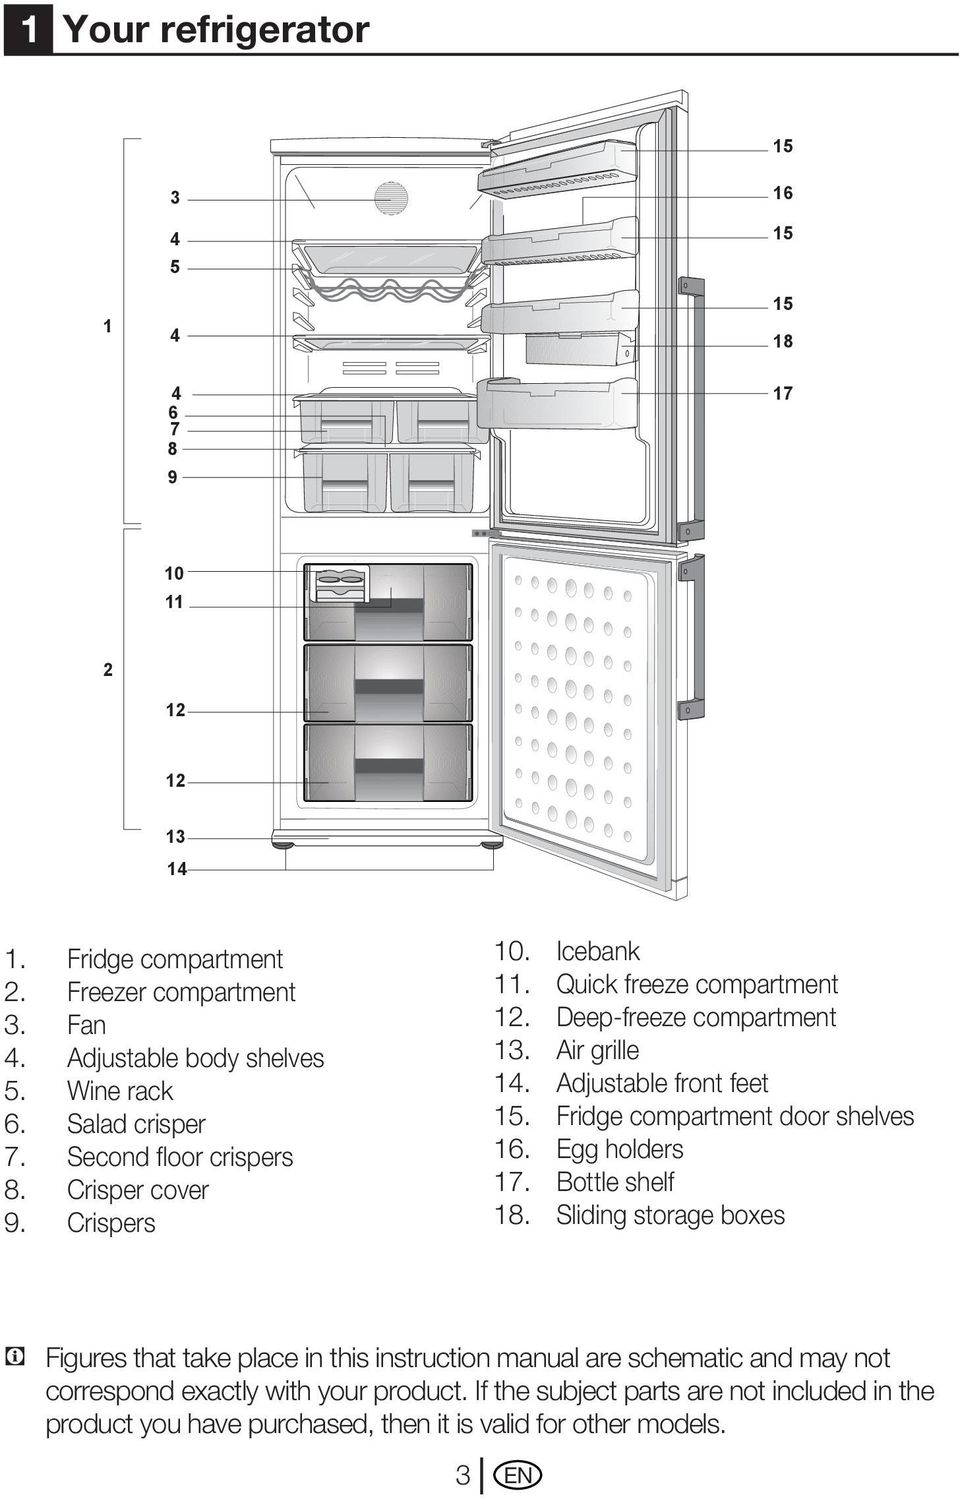 Fridge compartment Freezer compartment Fan Adjustable body shelves Wine rack Salad crisper Second floor crispers Crisper cover Crispers 10. 11. 12. 13. 14. 15. 16. 17.